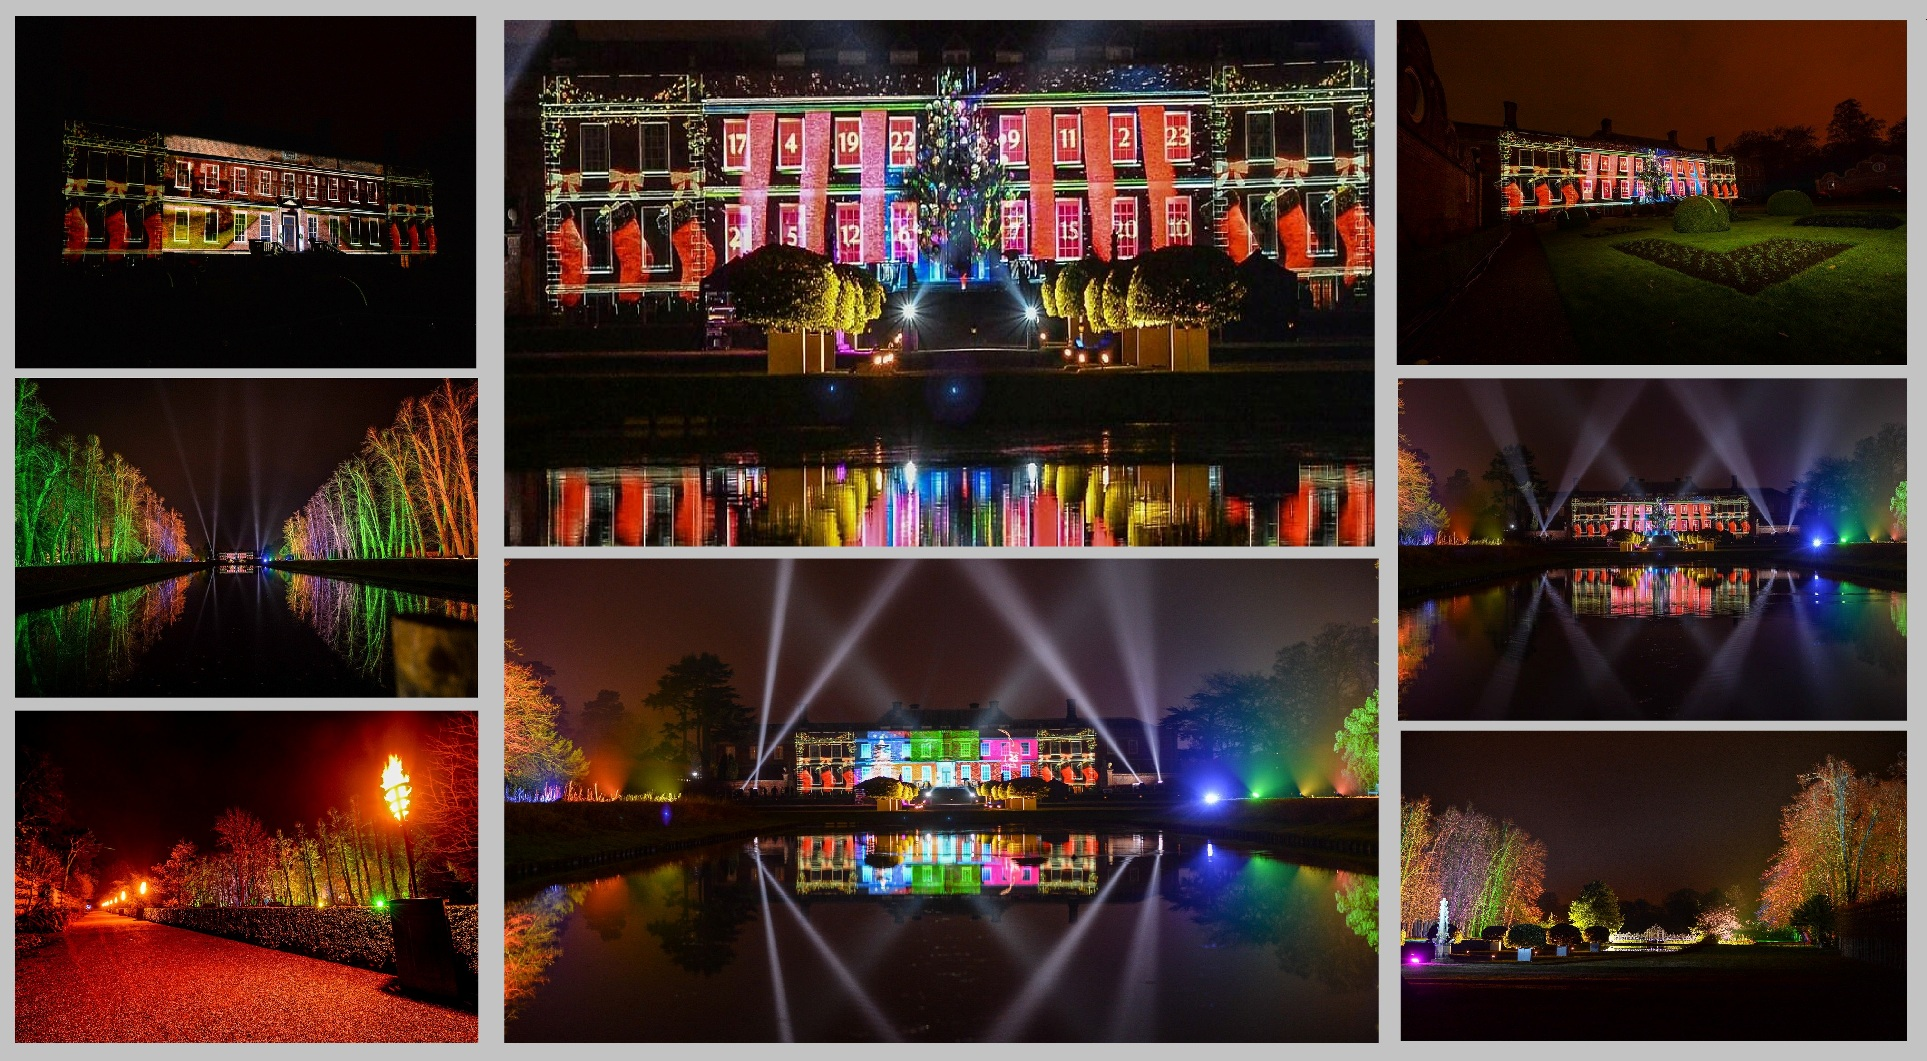 ERDDIG CHRISTMAS PROJECTIONS